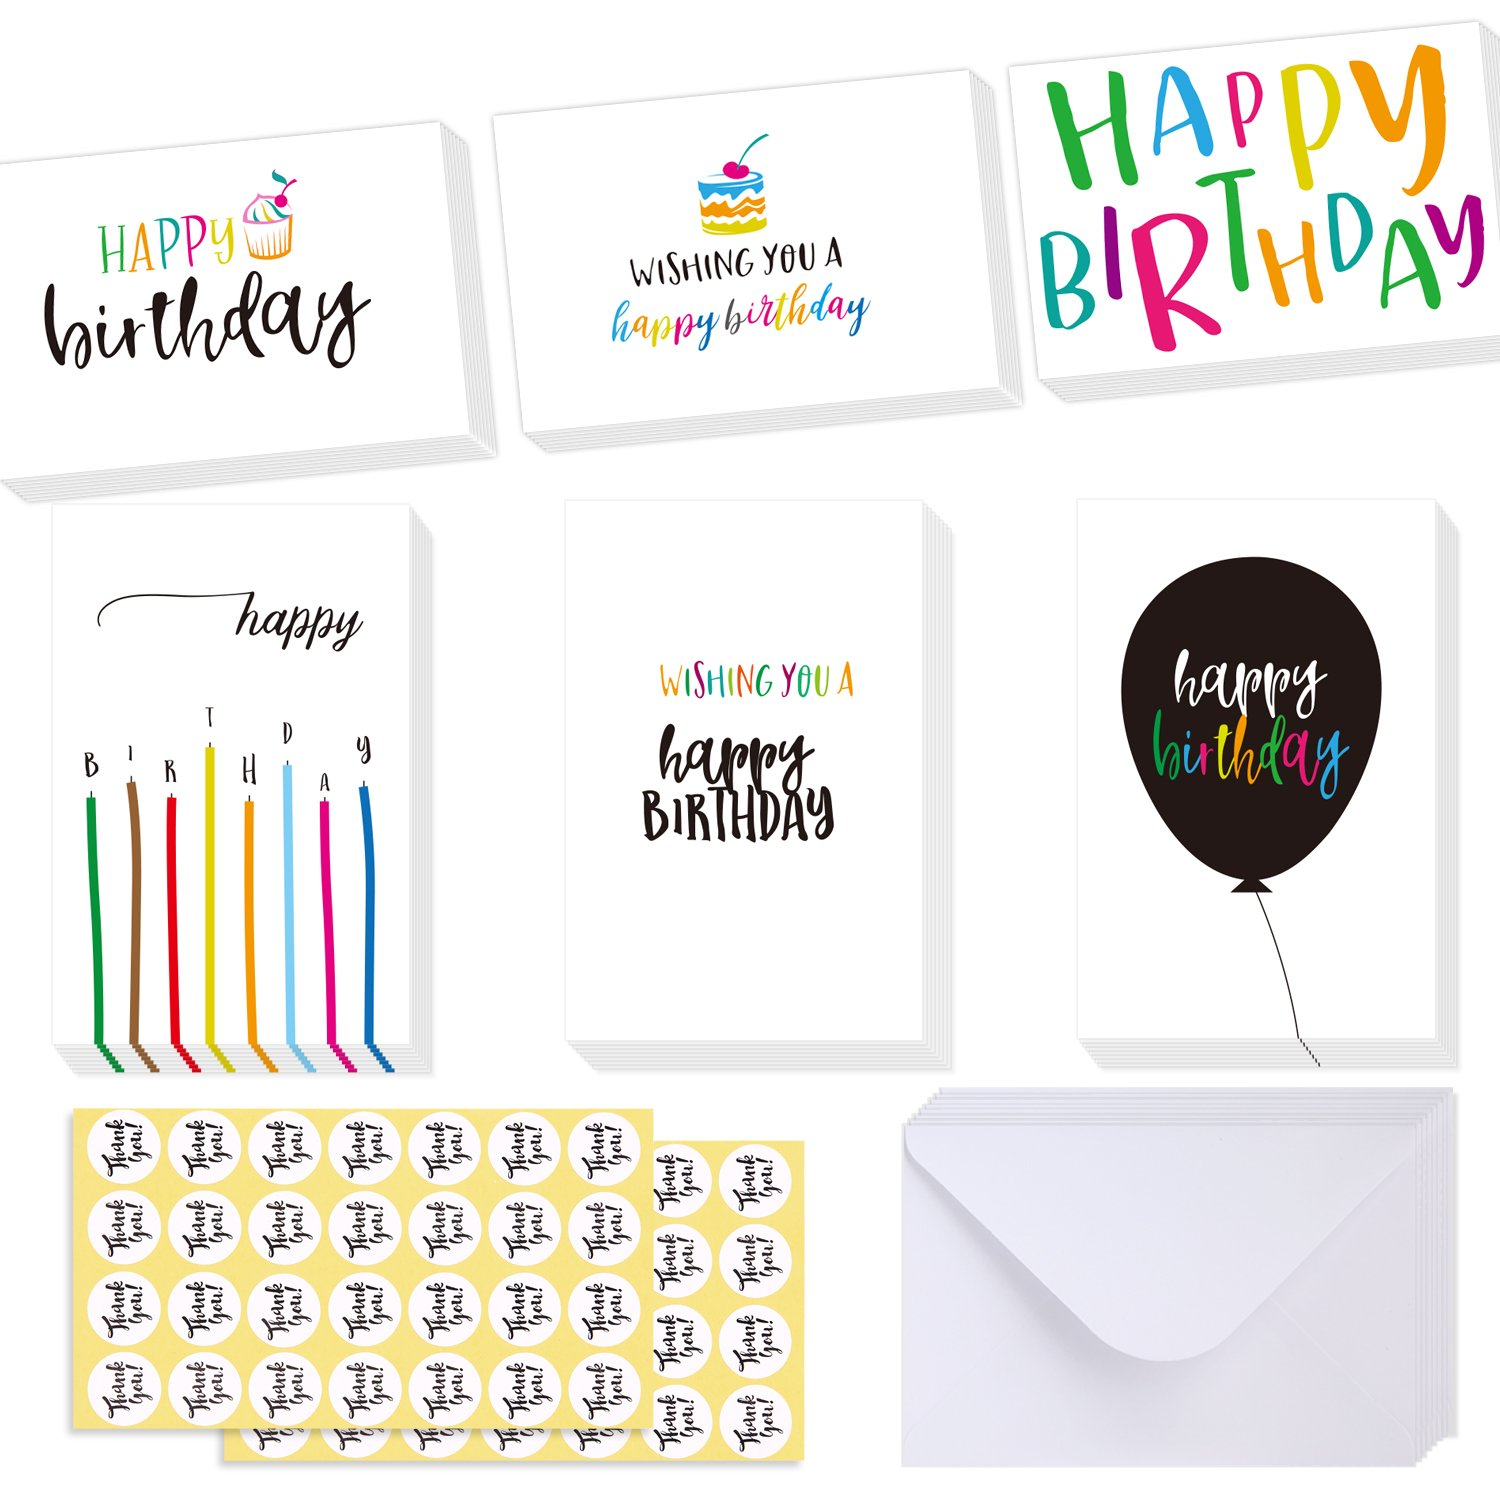 Amazon fanciful birthday wishes 36 birthday cards 6 designs ohuhu happy birthday gift cards 48 assorted folded kids birthday greeting blank note cards w kristyandbryce Image collections